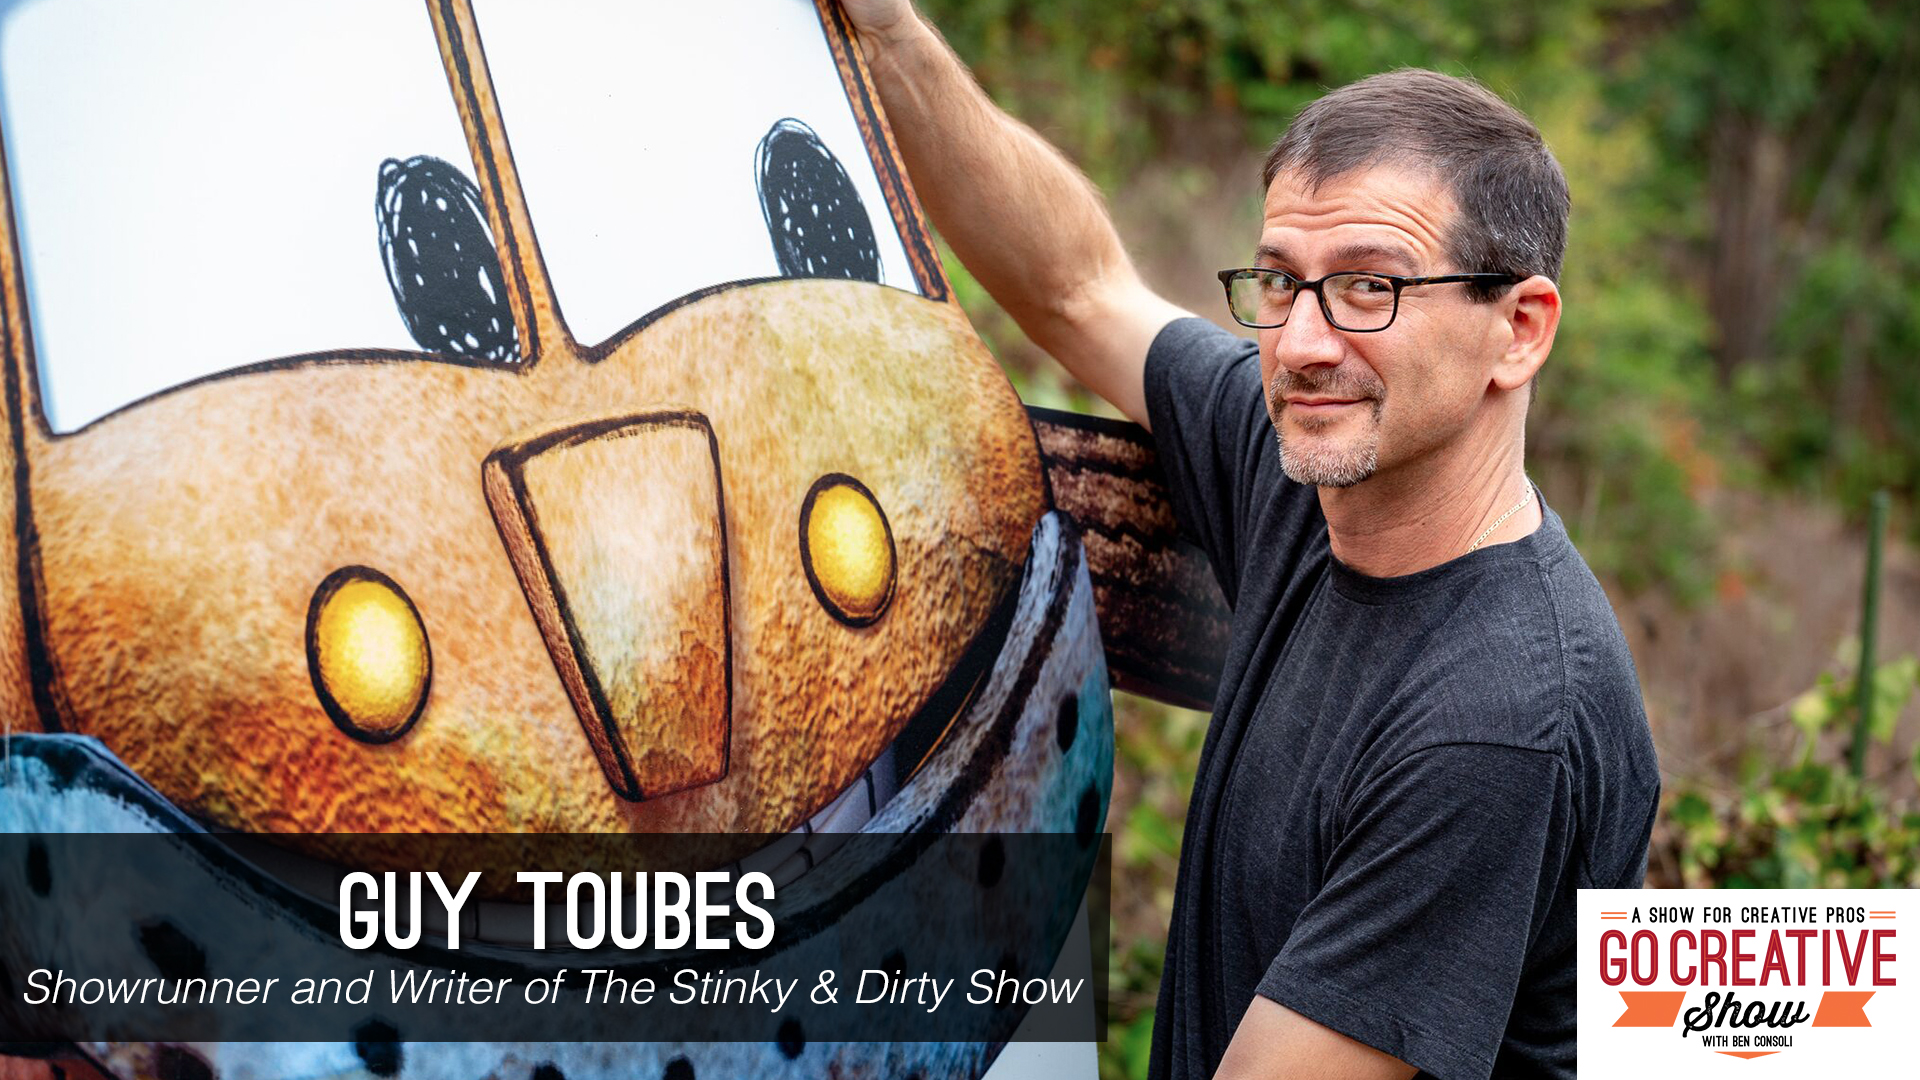 Guy Toubes showrunner for Stinky and Dirty Show on Go Creative Show with Ben Consoli